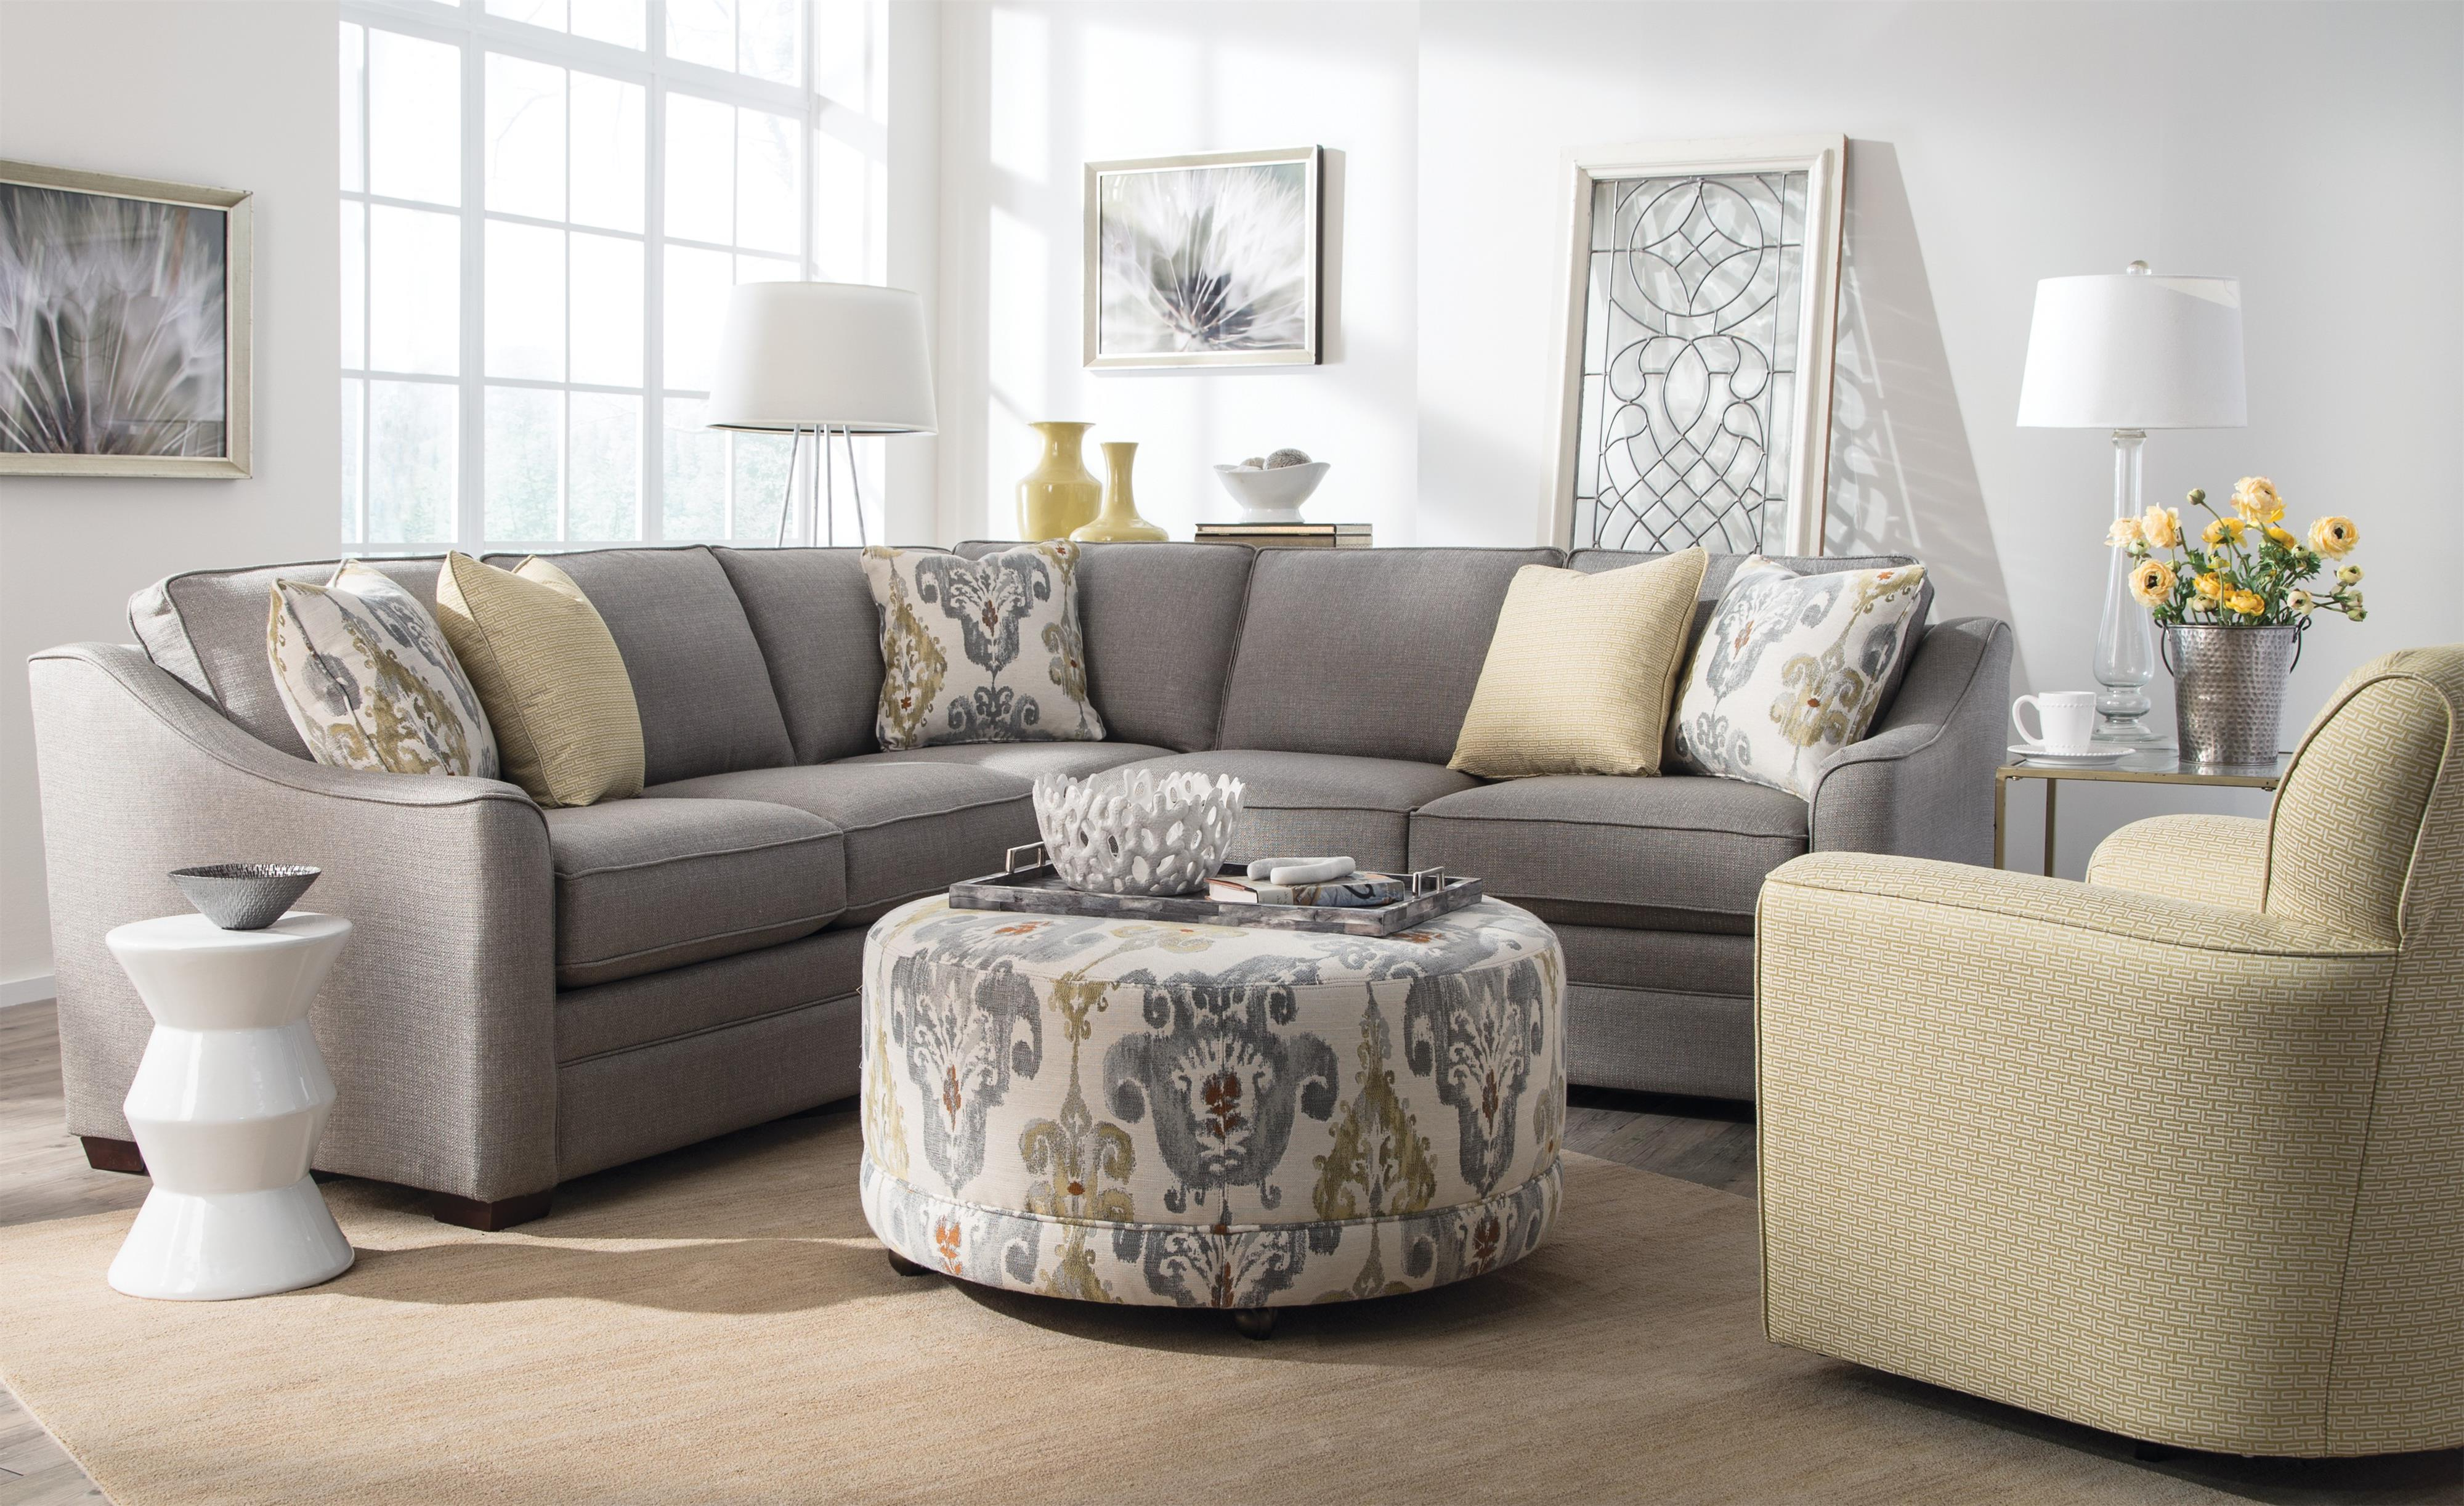 Adeline 3 Piece Sectionals Pertaining To 2019 Craftmaster F9 Custom Collection <b>customizable</b> 3 Piece (Gallery 6 of 20)